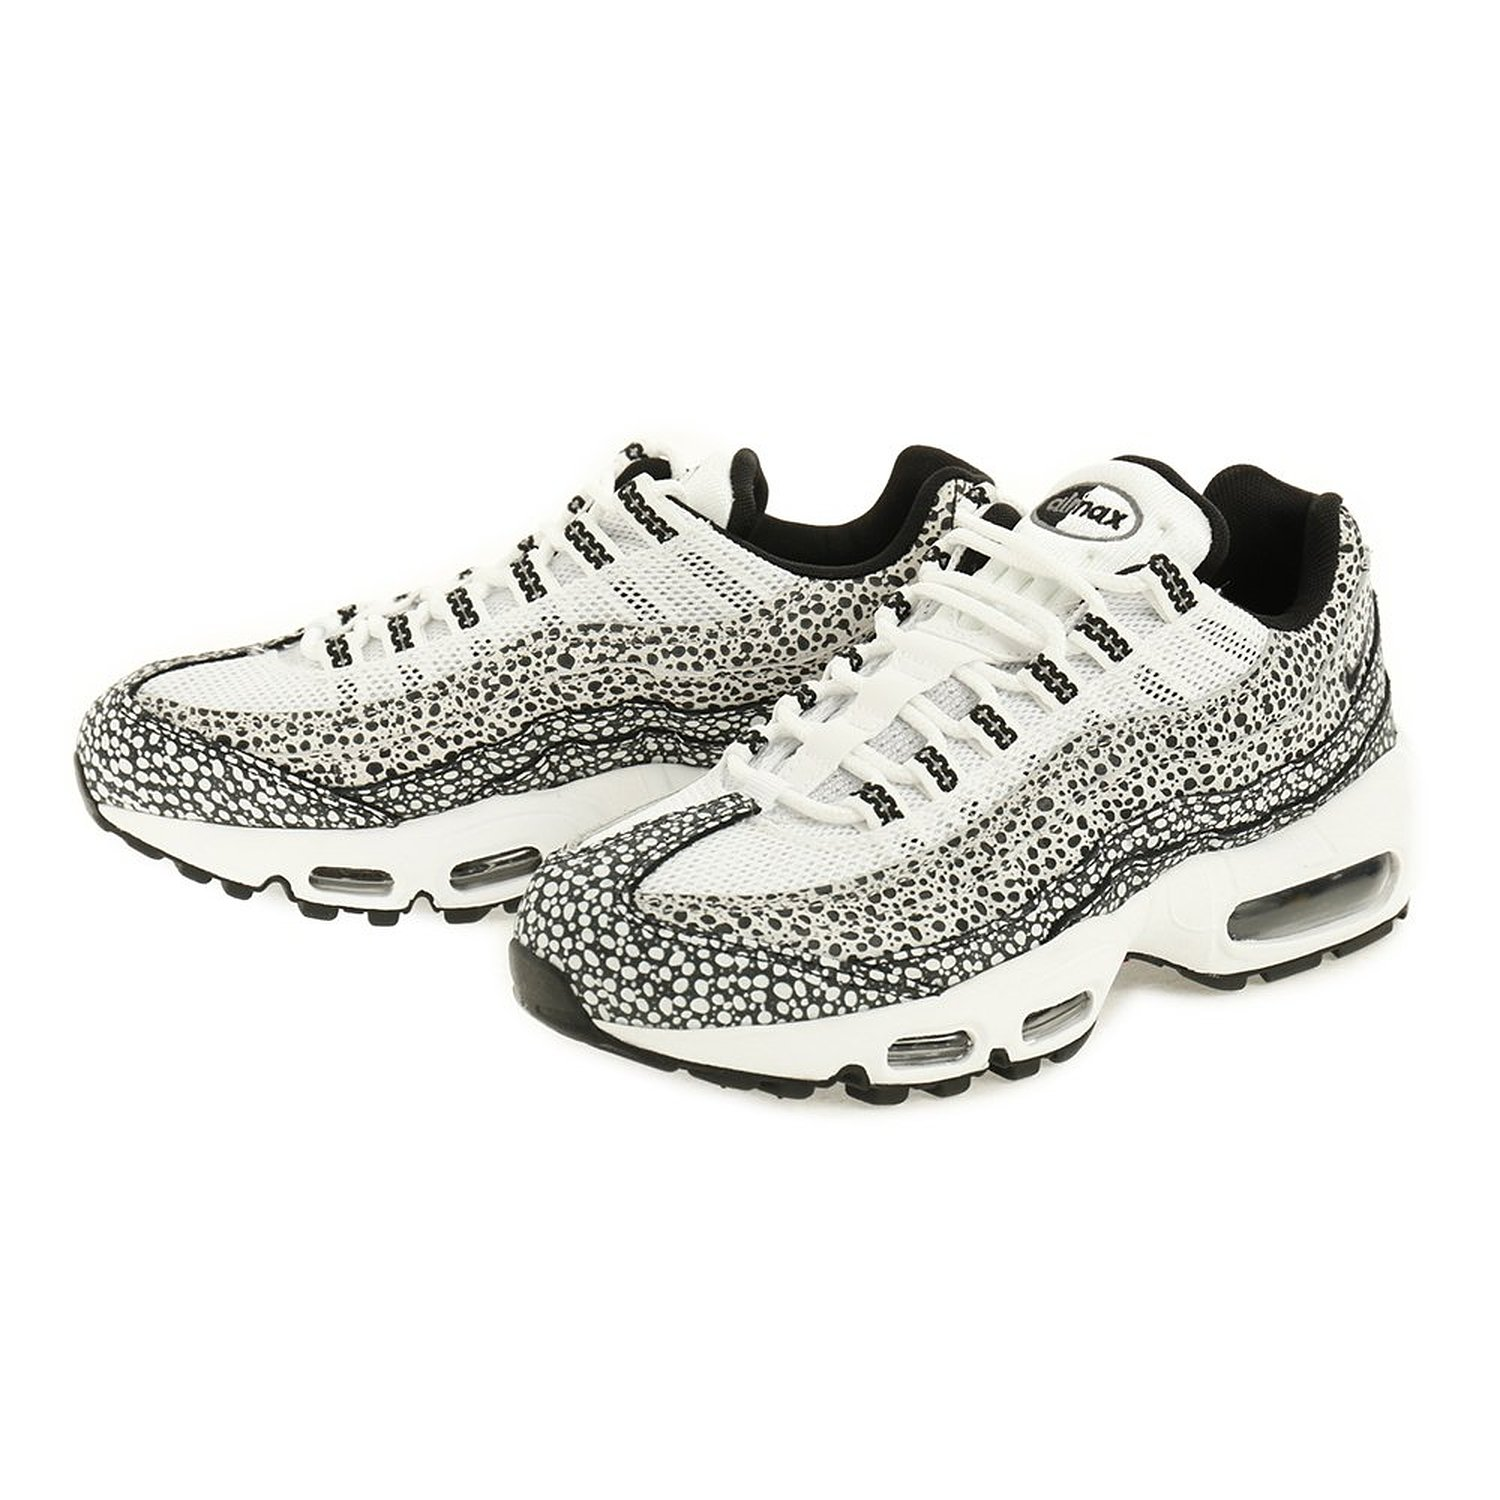 8d1126d0ab Buy Nike Womens Air Max 95 PRM 807443 100 Size 8 in Cheap Price on ...